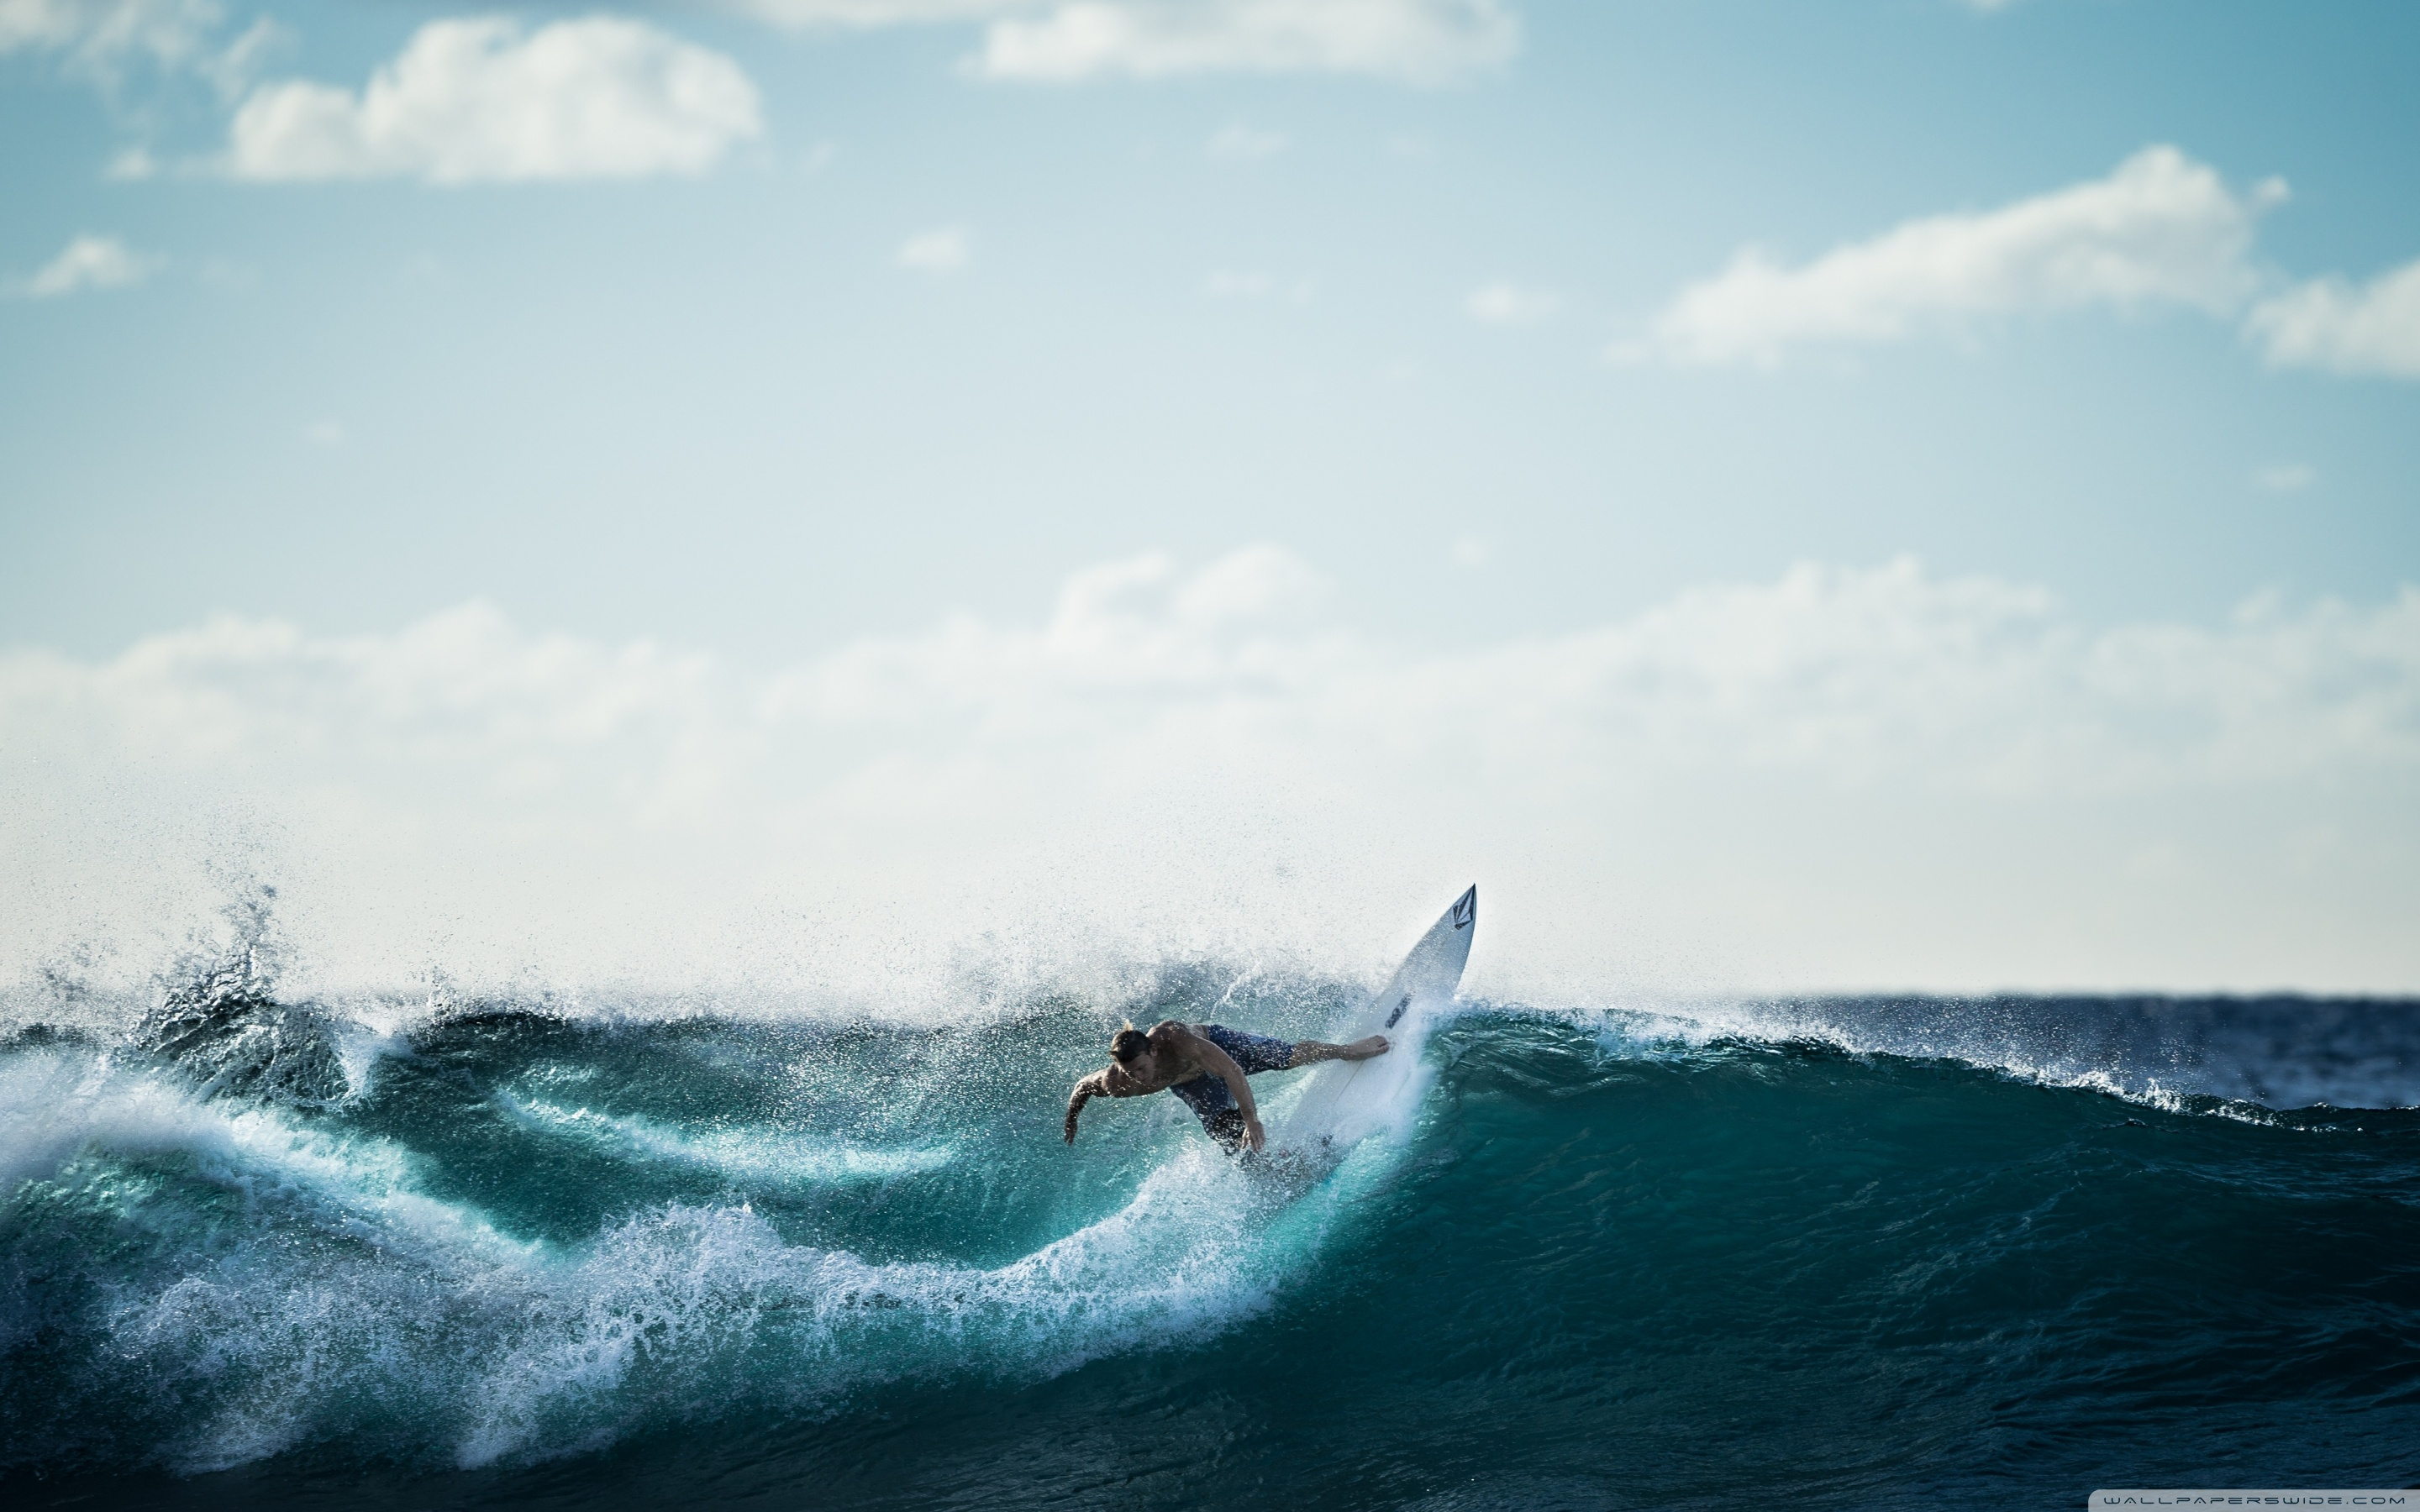 2880x1800 - Surfing Wallpapers 4